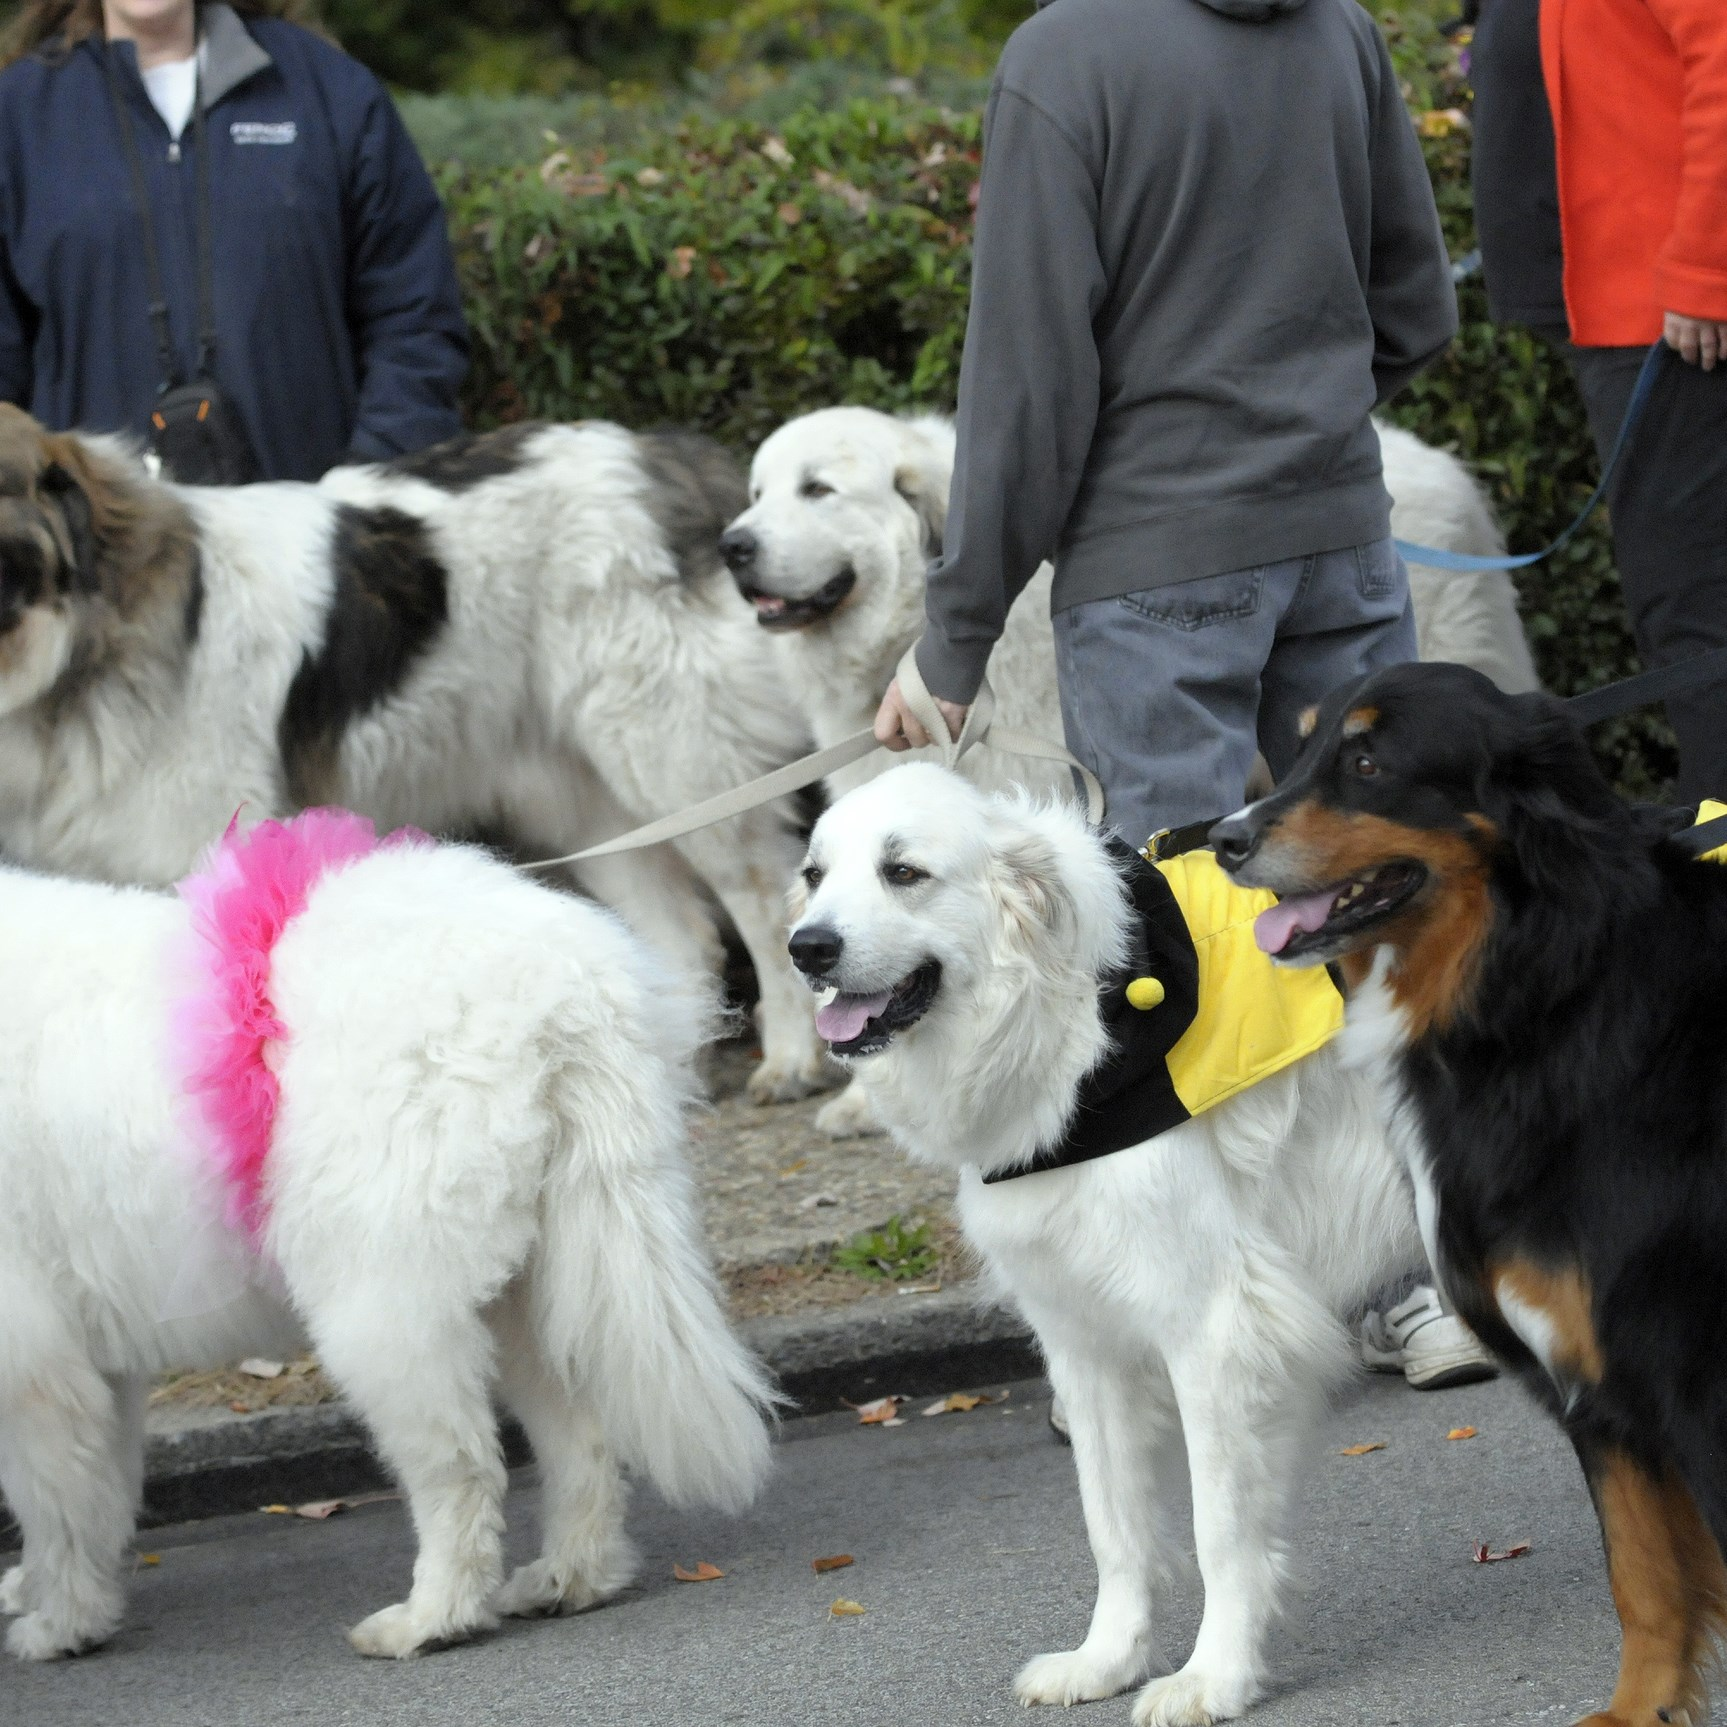 A group of Great Pyrenees dogs from Great Pyrenees Rescue of Western Pennsylvania.